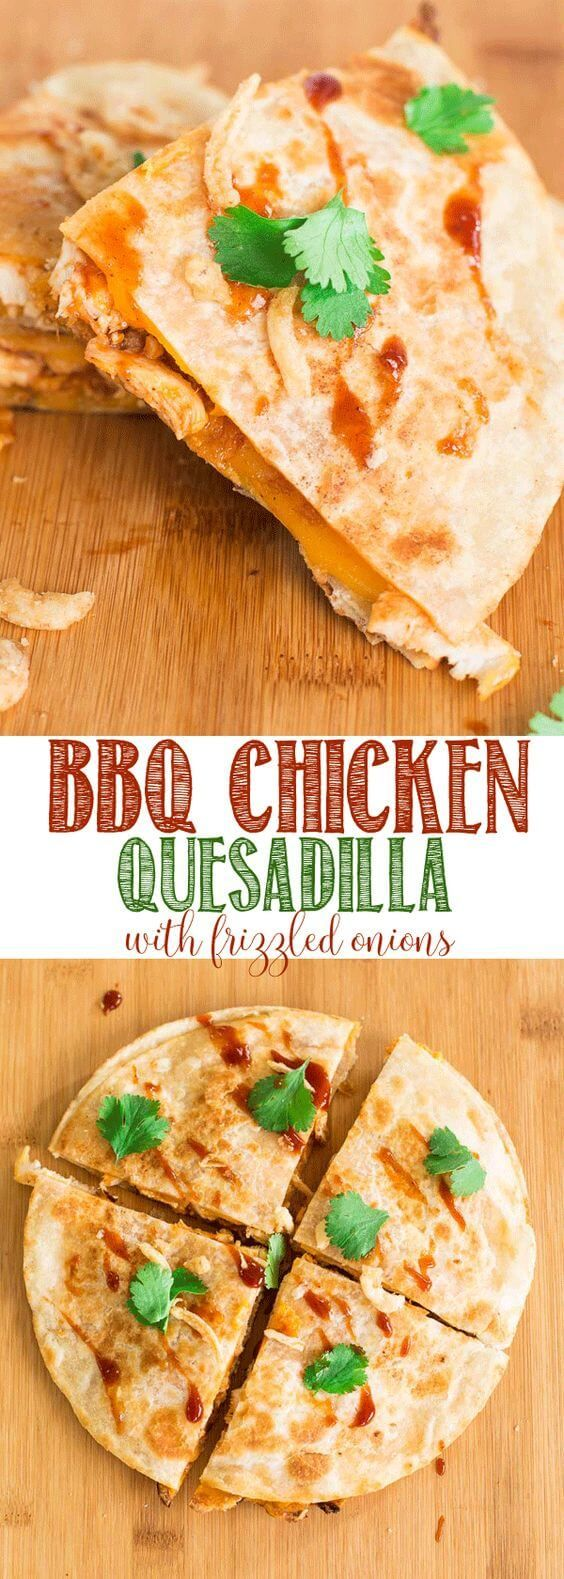 nice BBQ Chicken Quesadilla with Frizzled Onions